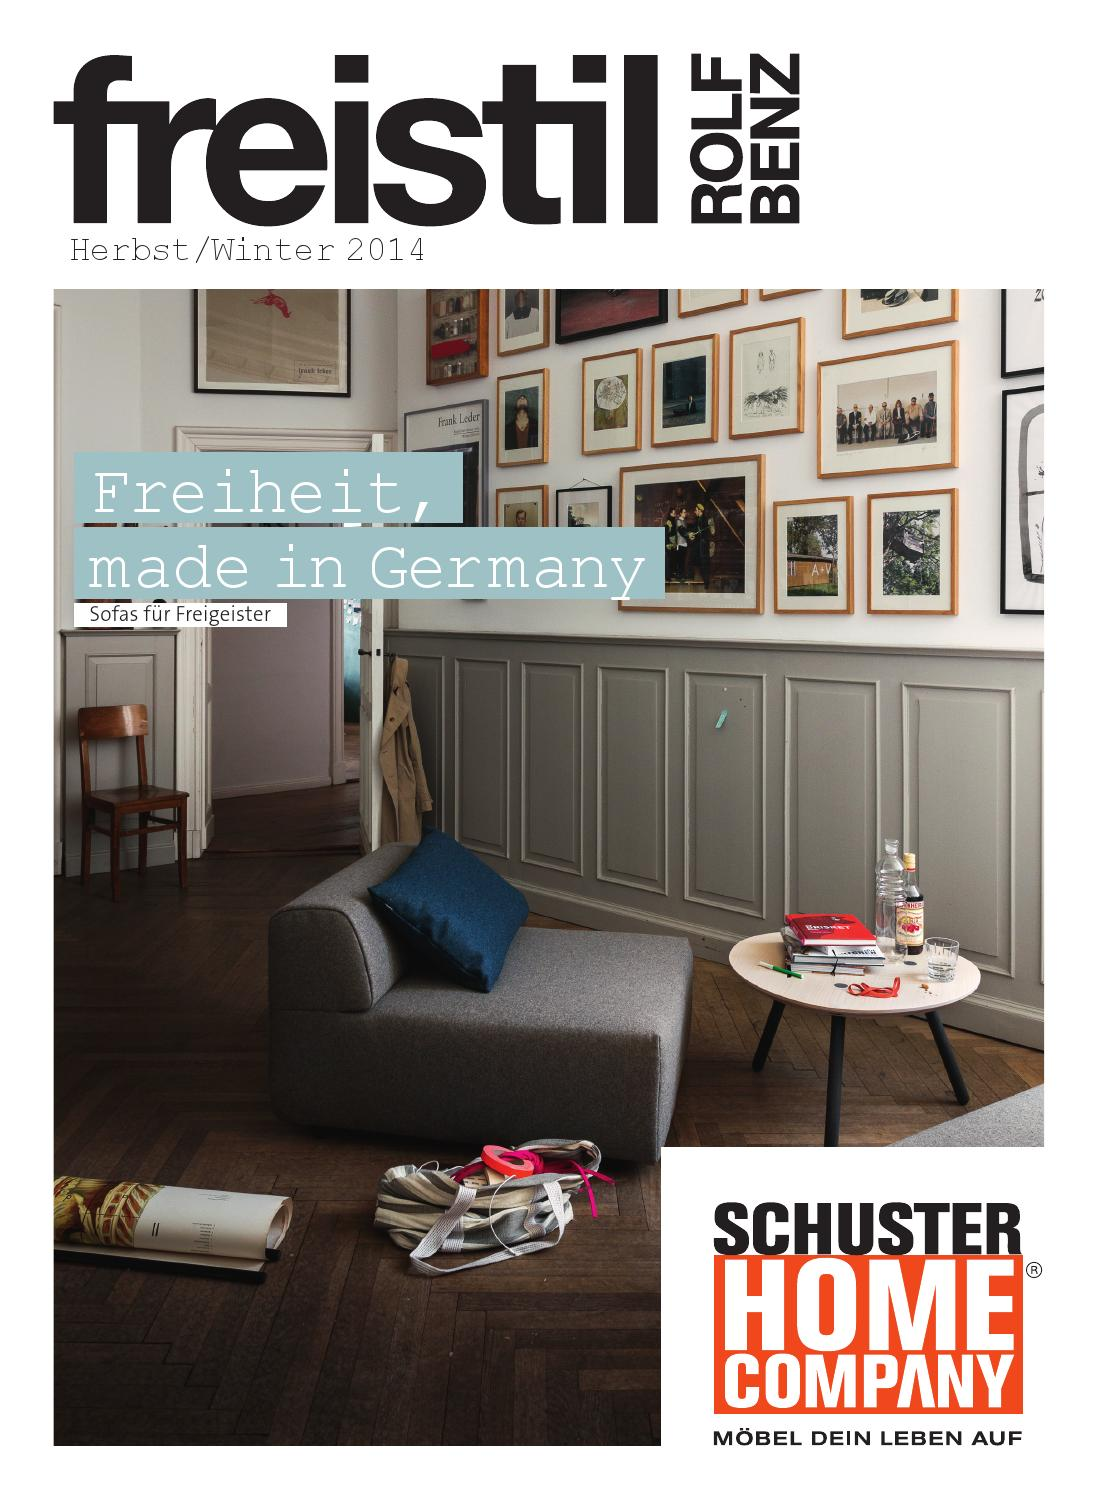 schuster hc freistil katalog 2014 by perspektive werbeagentur issuu. Black Bedroom Furniture Sets. Home Design Ideas